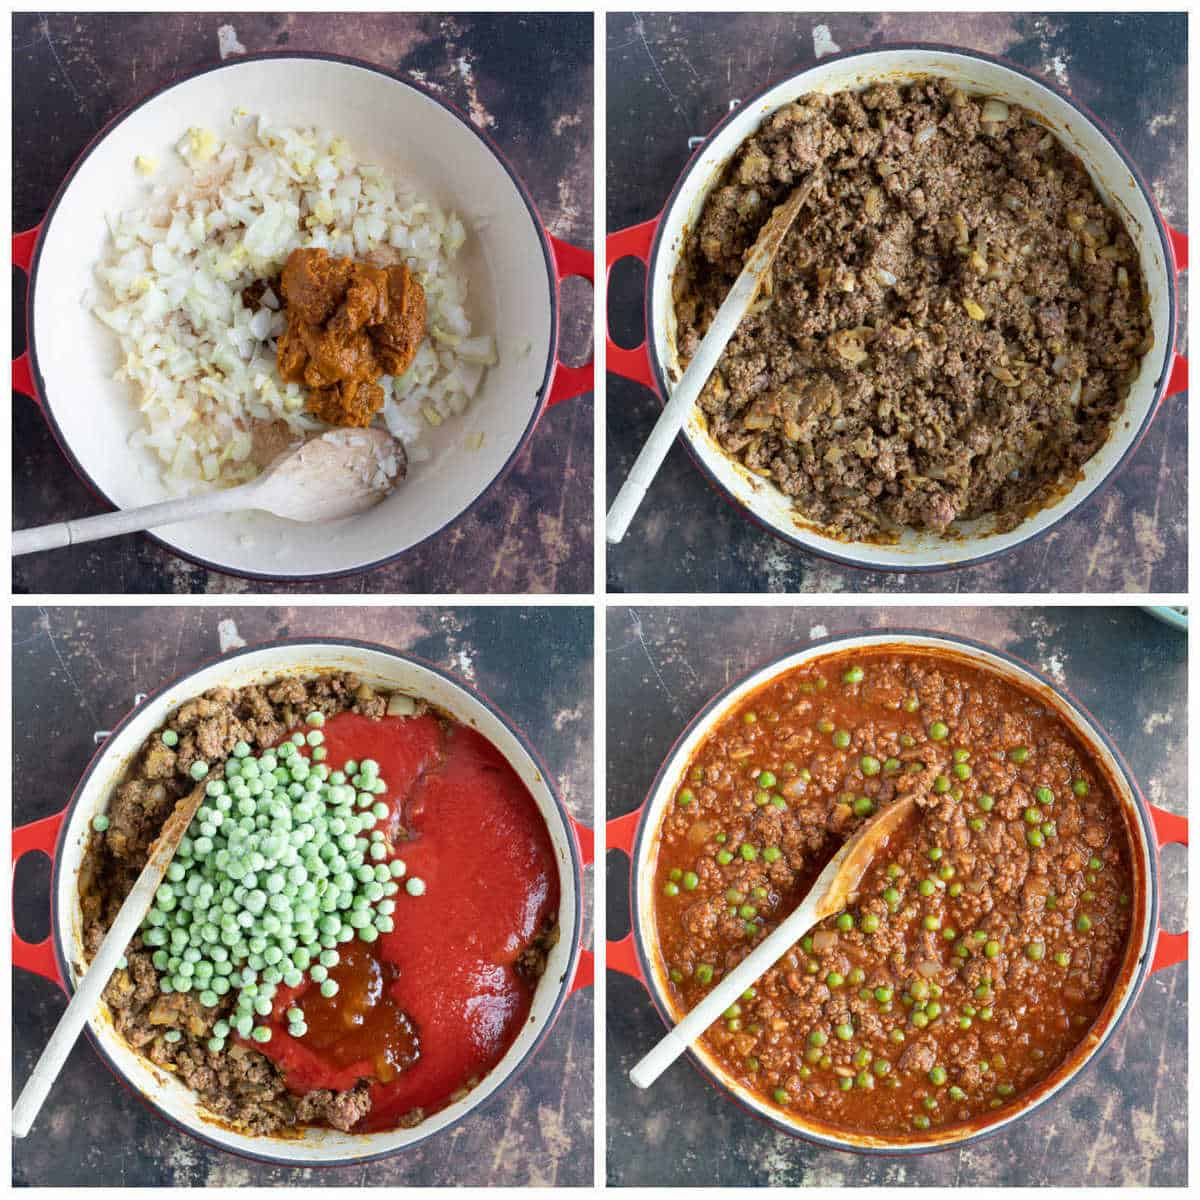 Step by step photo instructions for making Keema Matar.